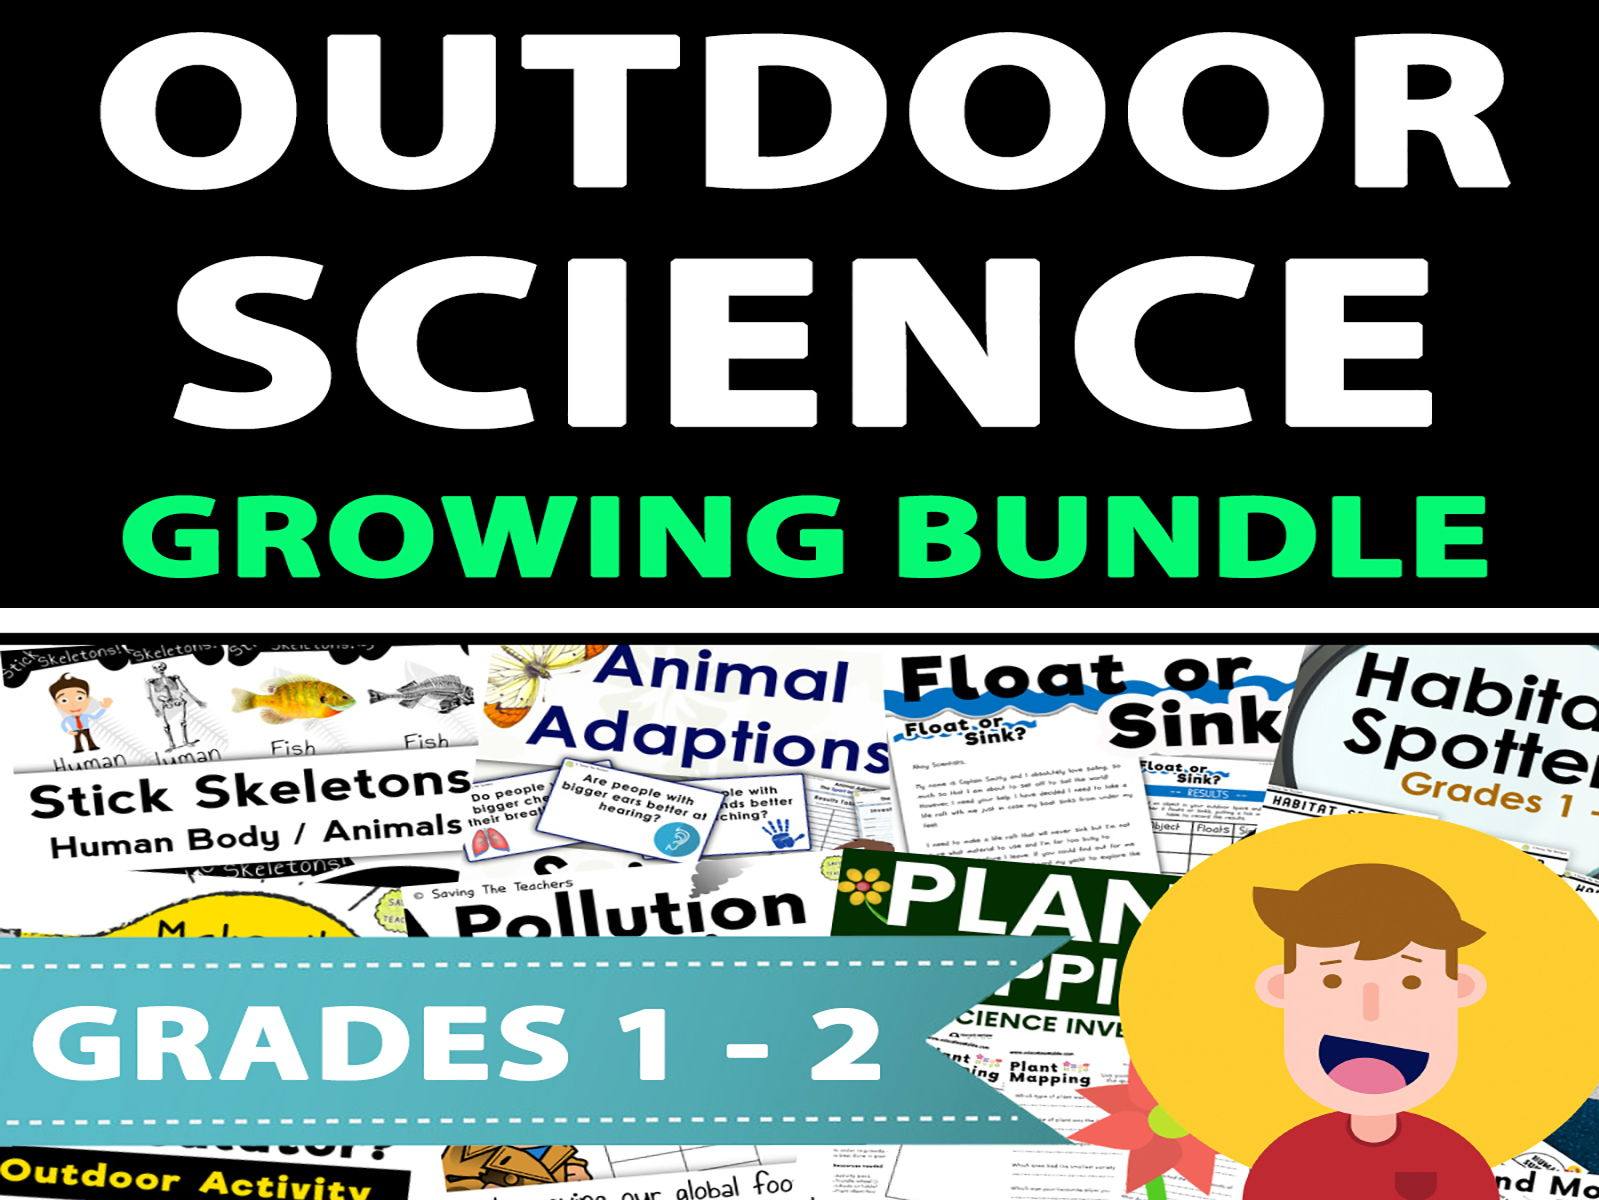 Outdoor Science Investigations / Activities Growing Bundle - Years 1 - 3